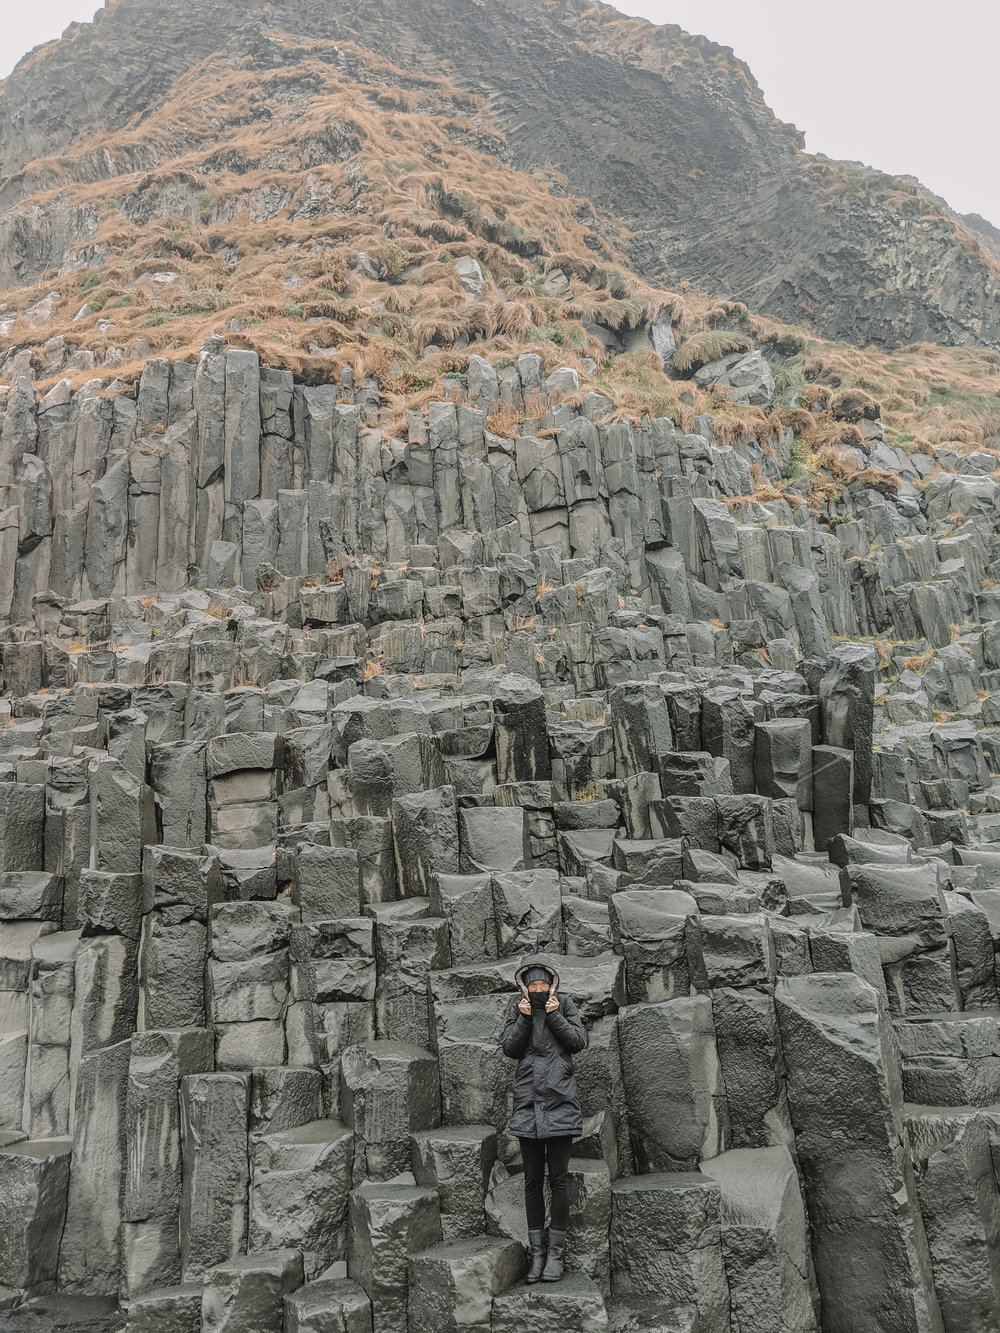 Last year we visited the Giants Causeway, we're starting to think that we'll have to make Basalt chasing a thing on every vacation!